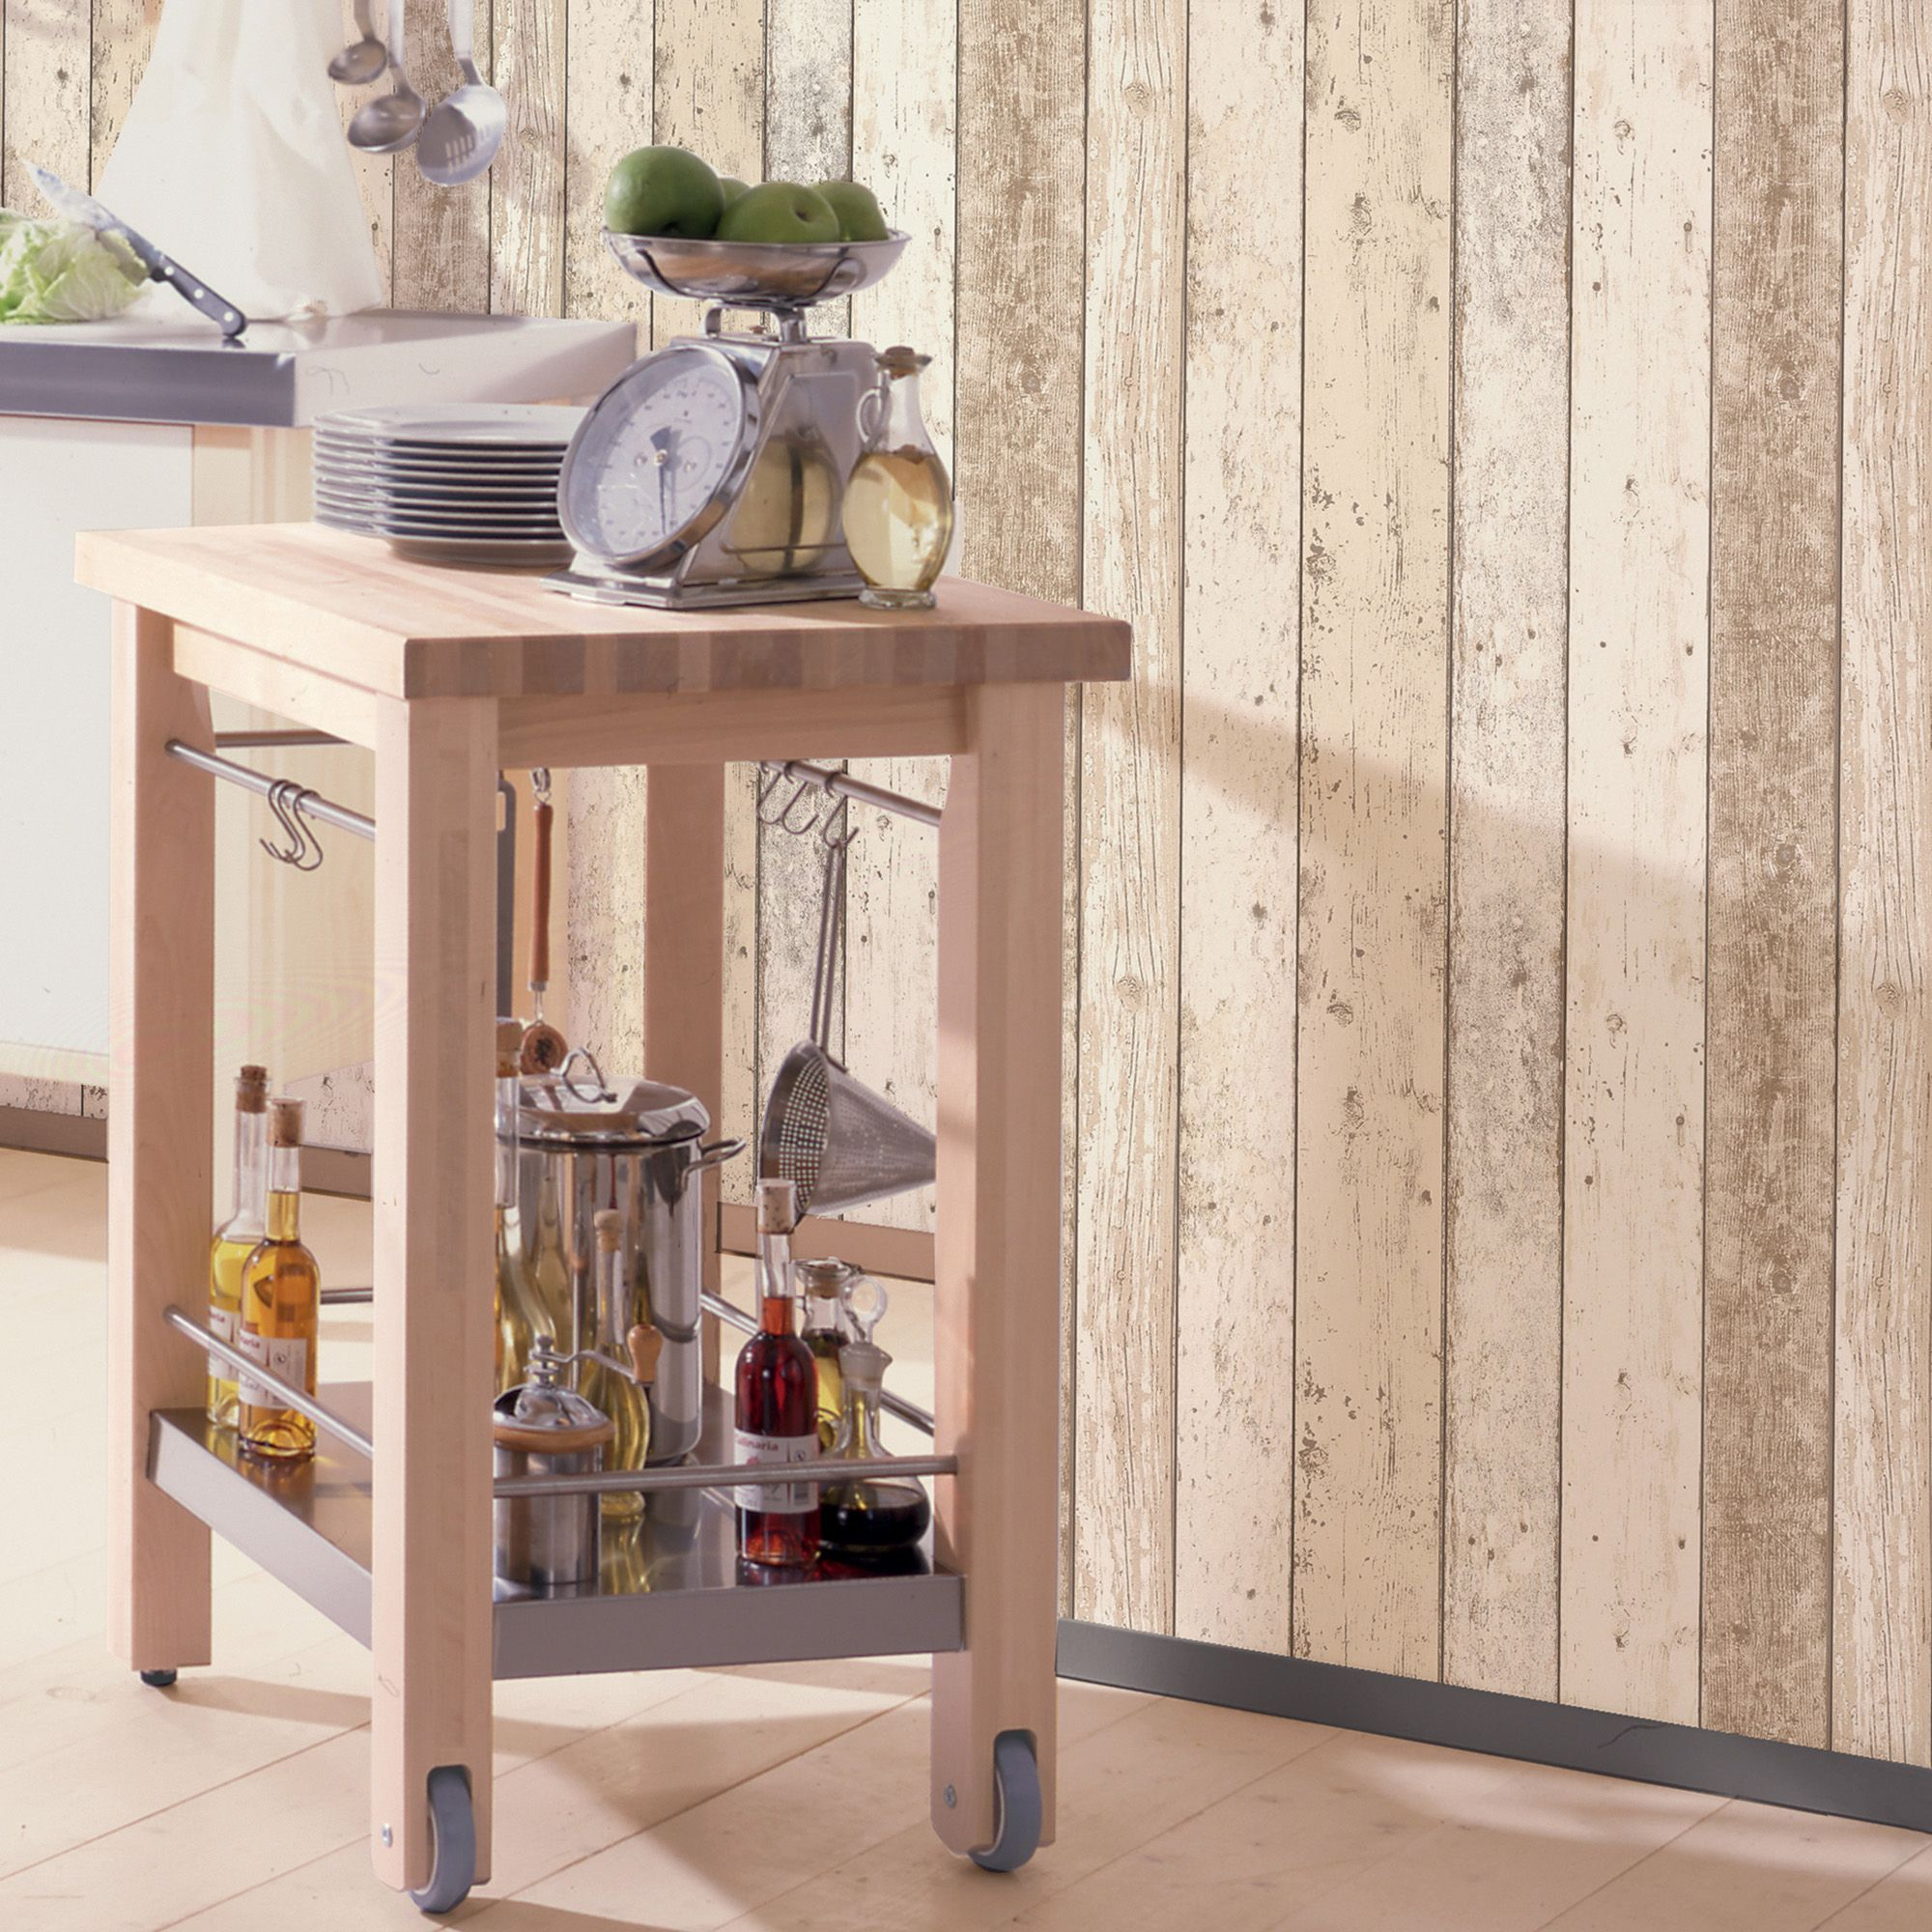 B And Q Wallpaper Table